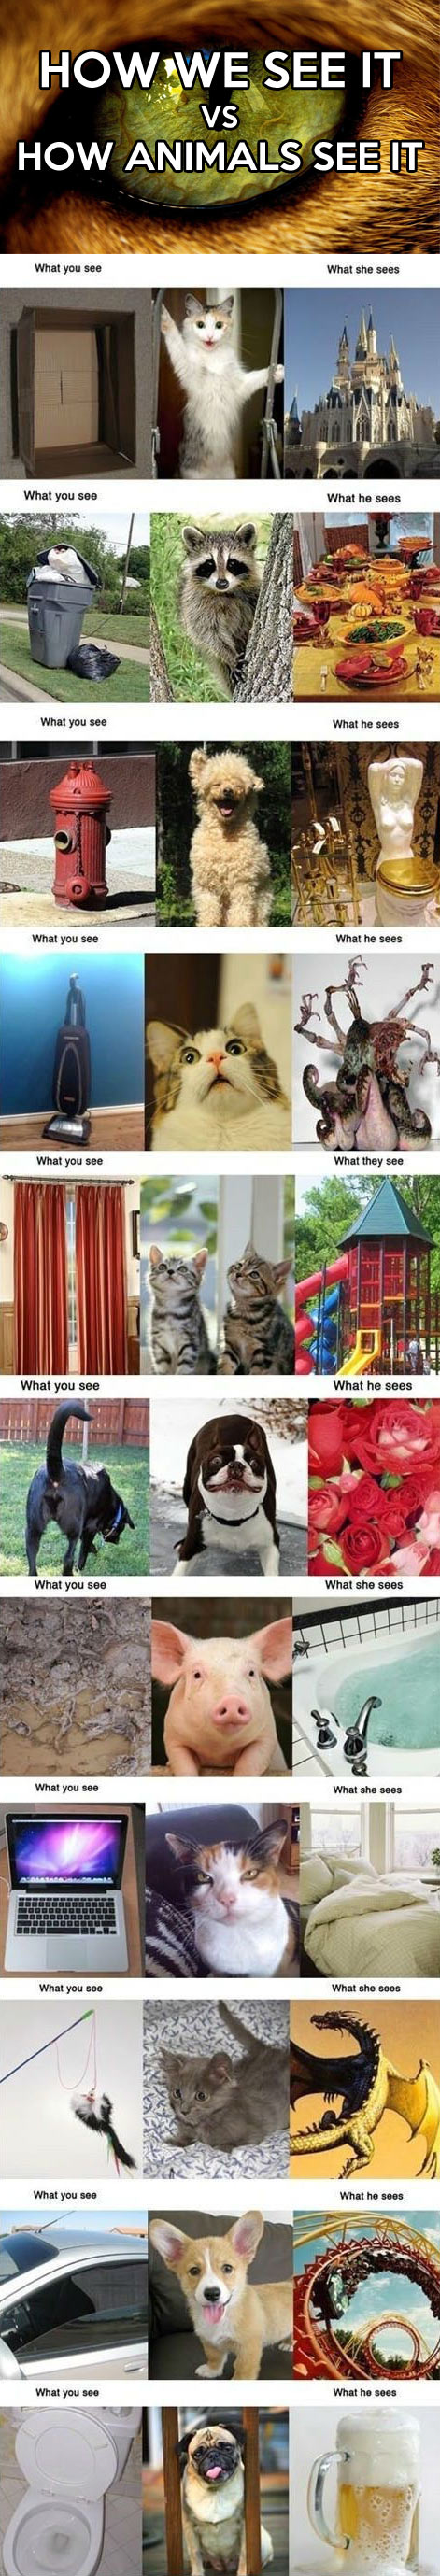 funny-how-animals-see-things